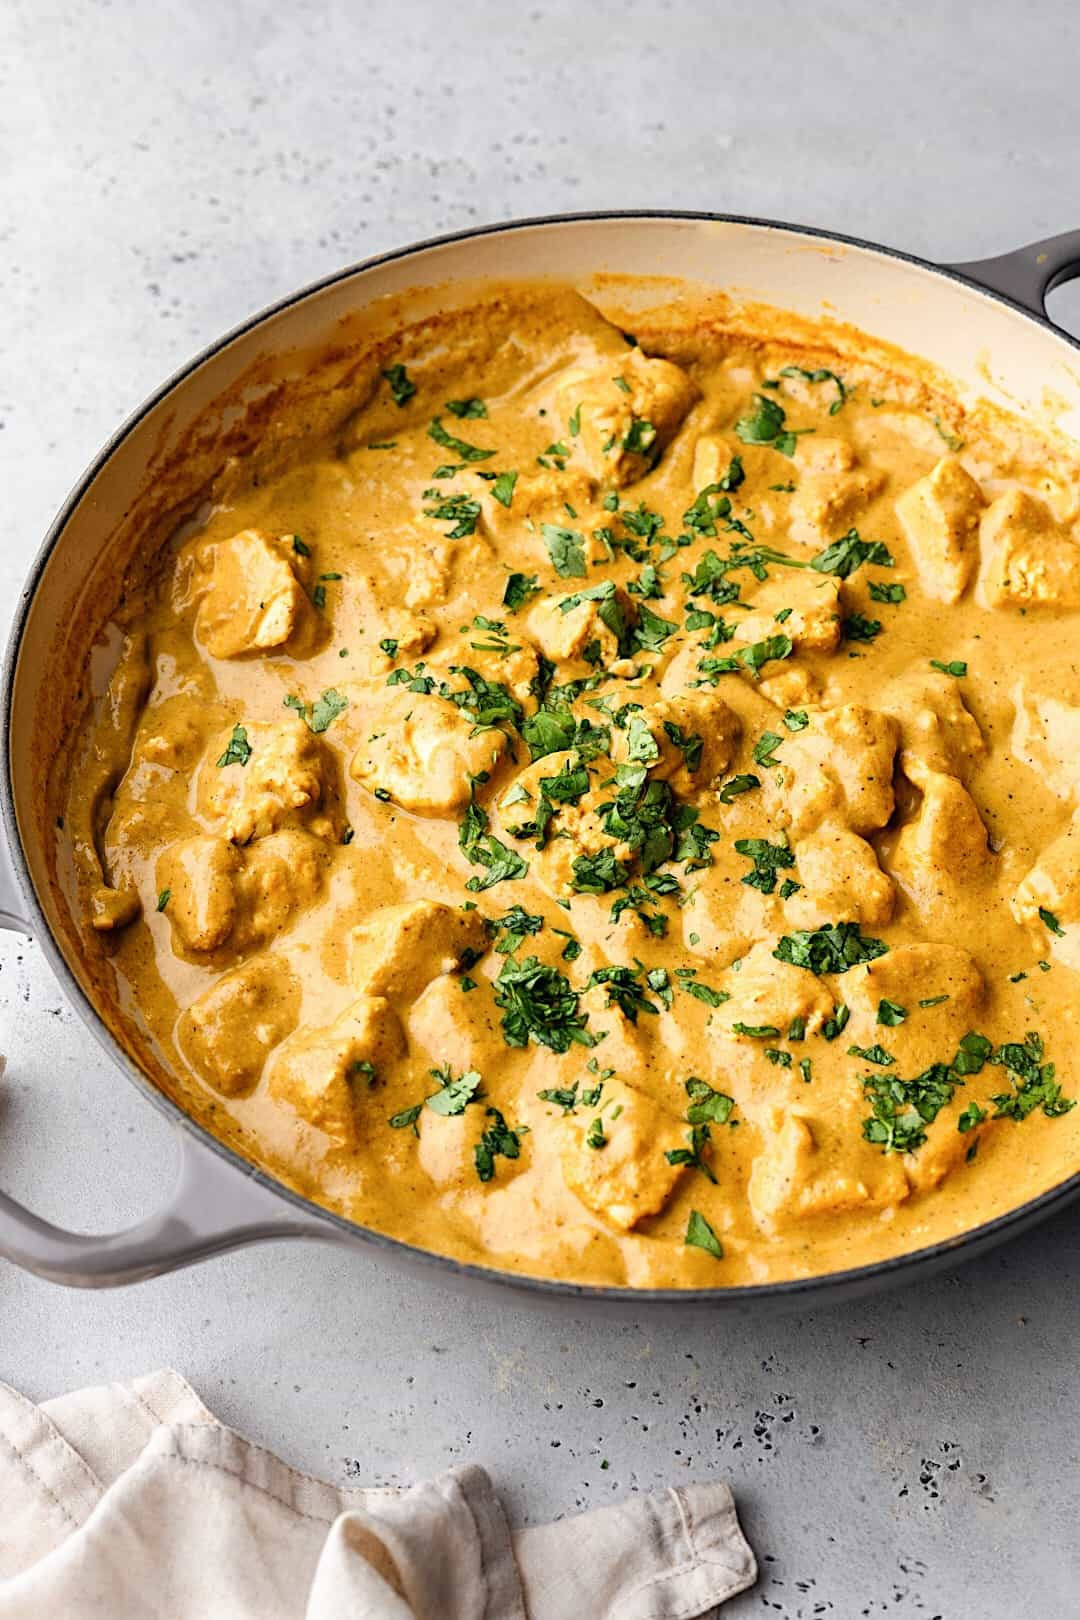 Vegan Tofu Korma Curry with Toasted Cashews #vegan #curry #cashew #recipe #tofu